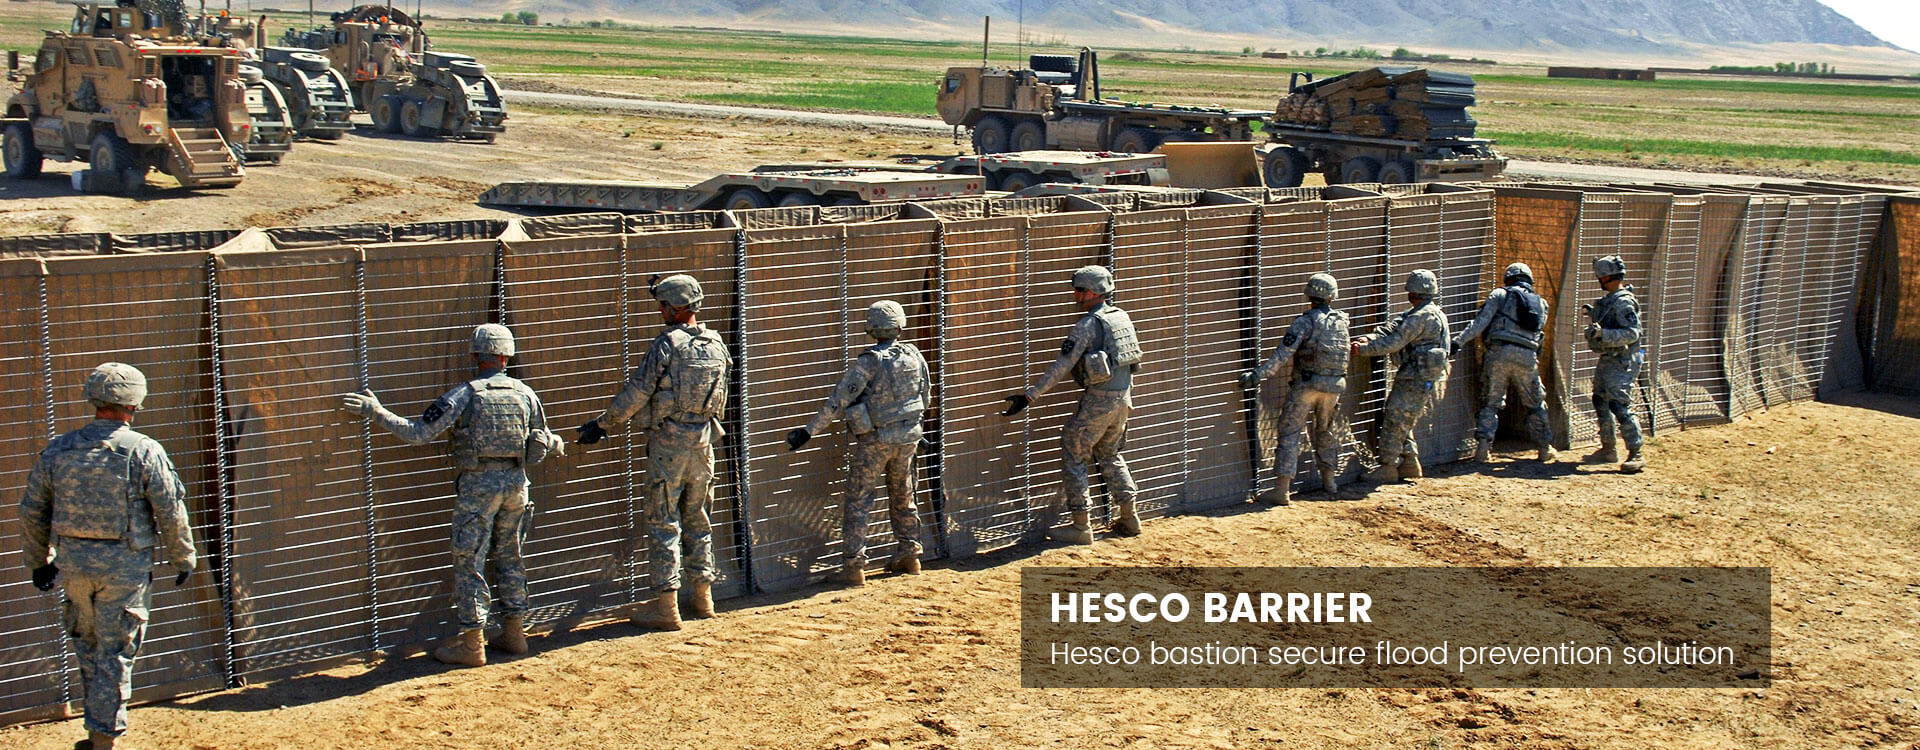 Hesco Barrier